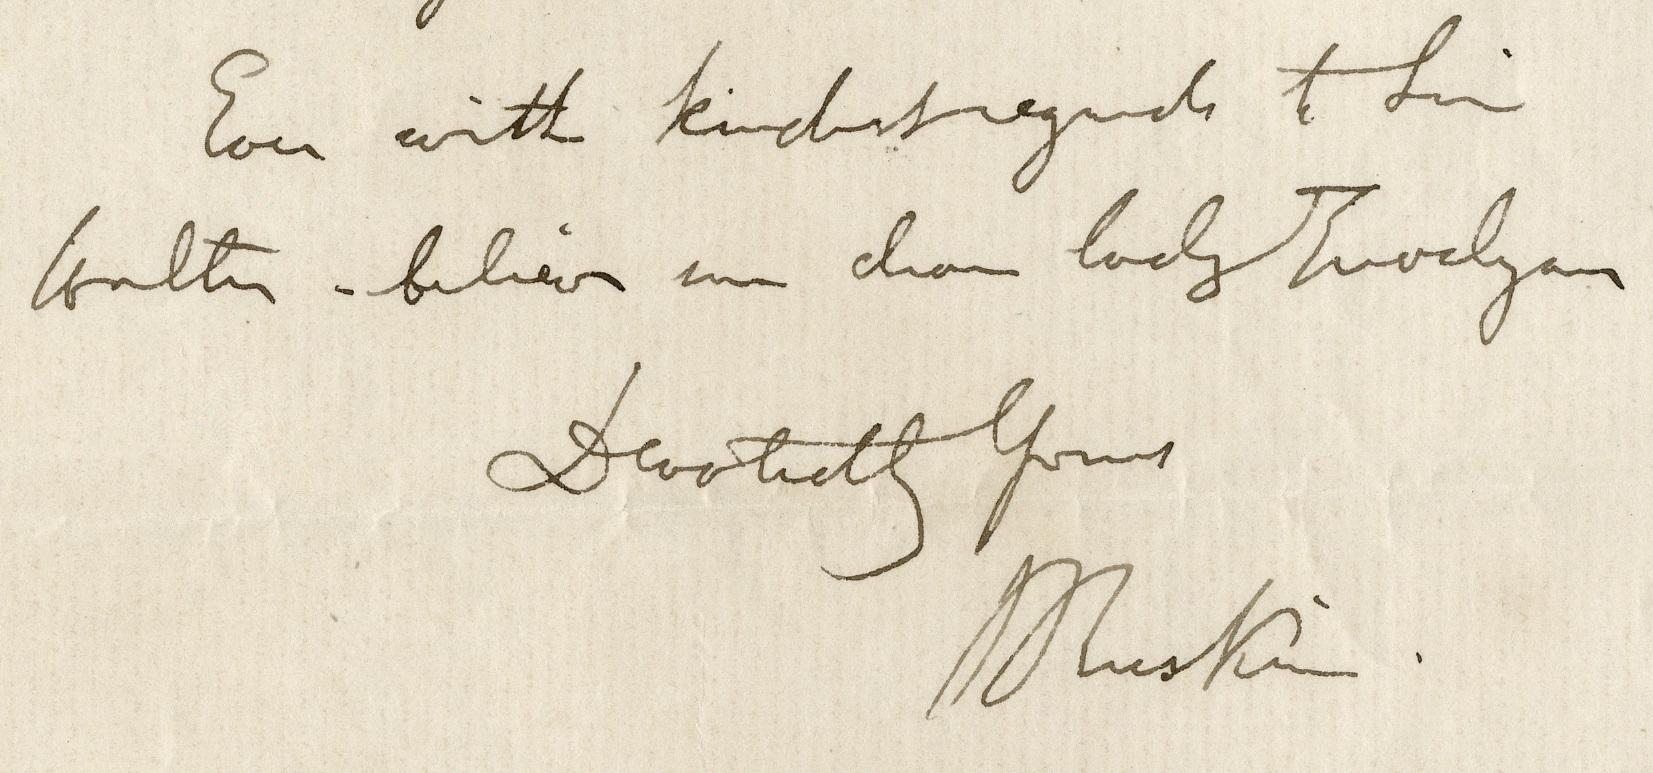 Extract from a letter from John Ruskin to Lady Pauline, which includes his signature